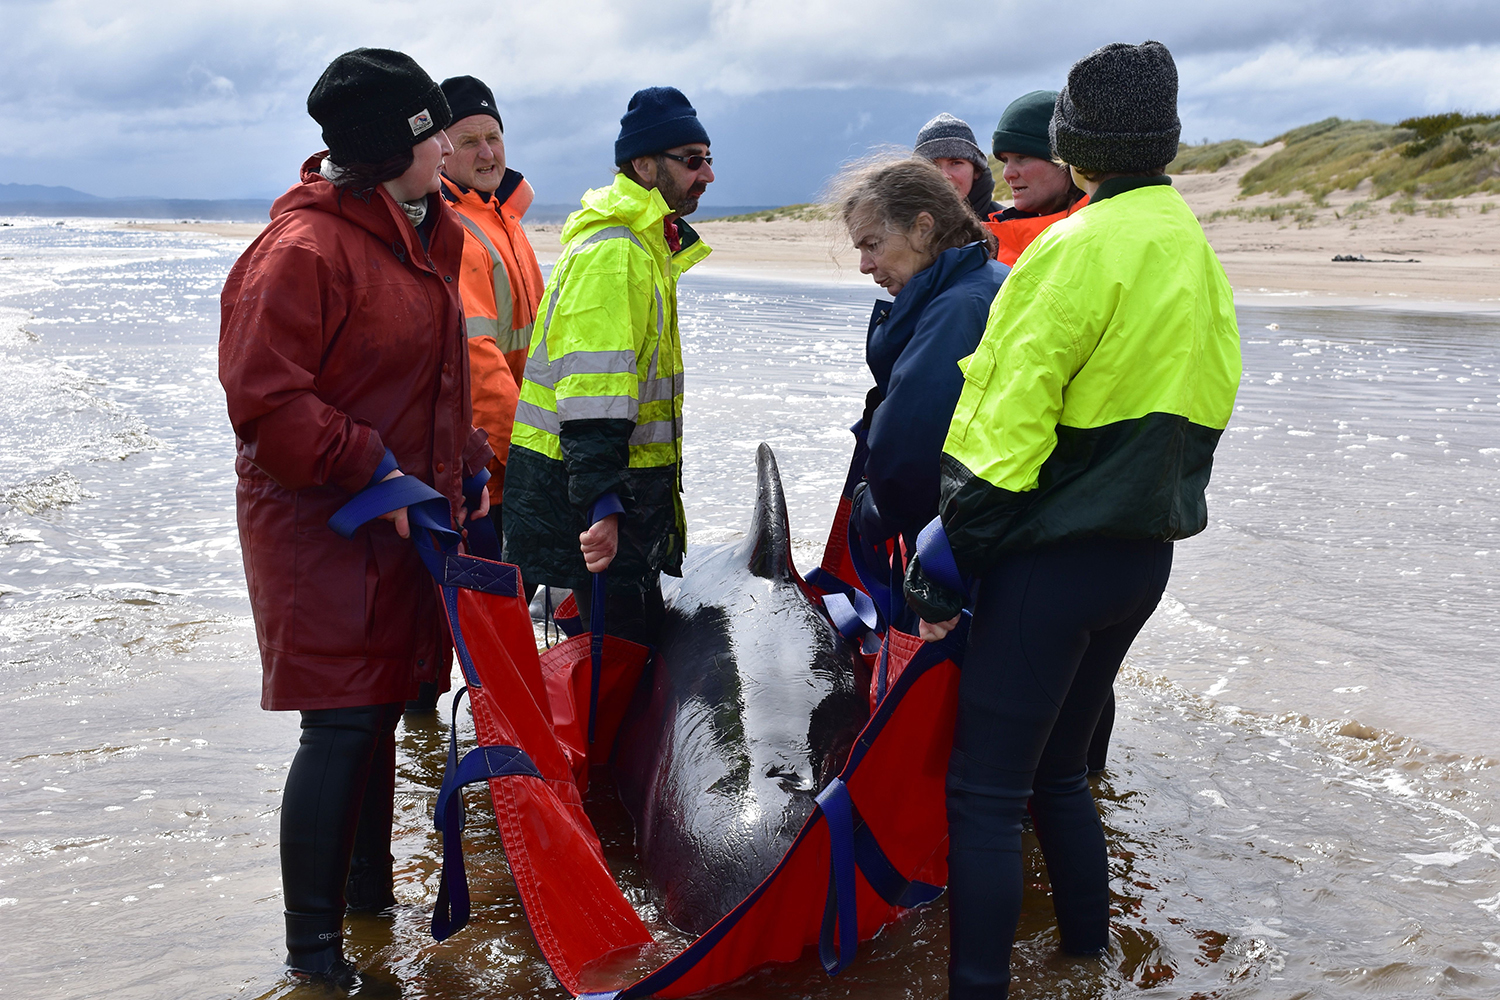 Rescuers work to save a whale on a beach in Macquarie Harbour on the rugged west coast of Tasmania on Sept. 25. Australian rescuers have been forced to euthanize some surviving whales from a mass stranding that killed 380 members of the giant pod. MELL CHUN/AFP via Getty Images